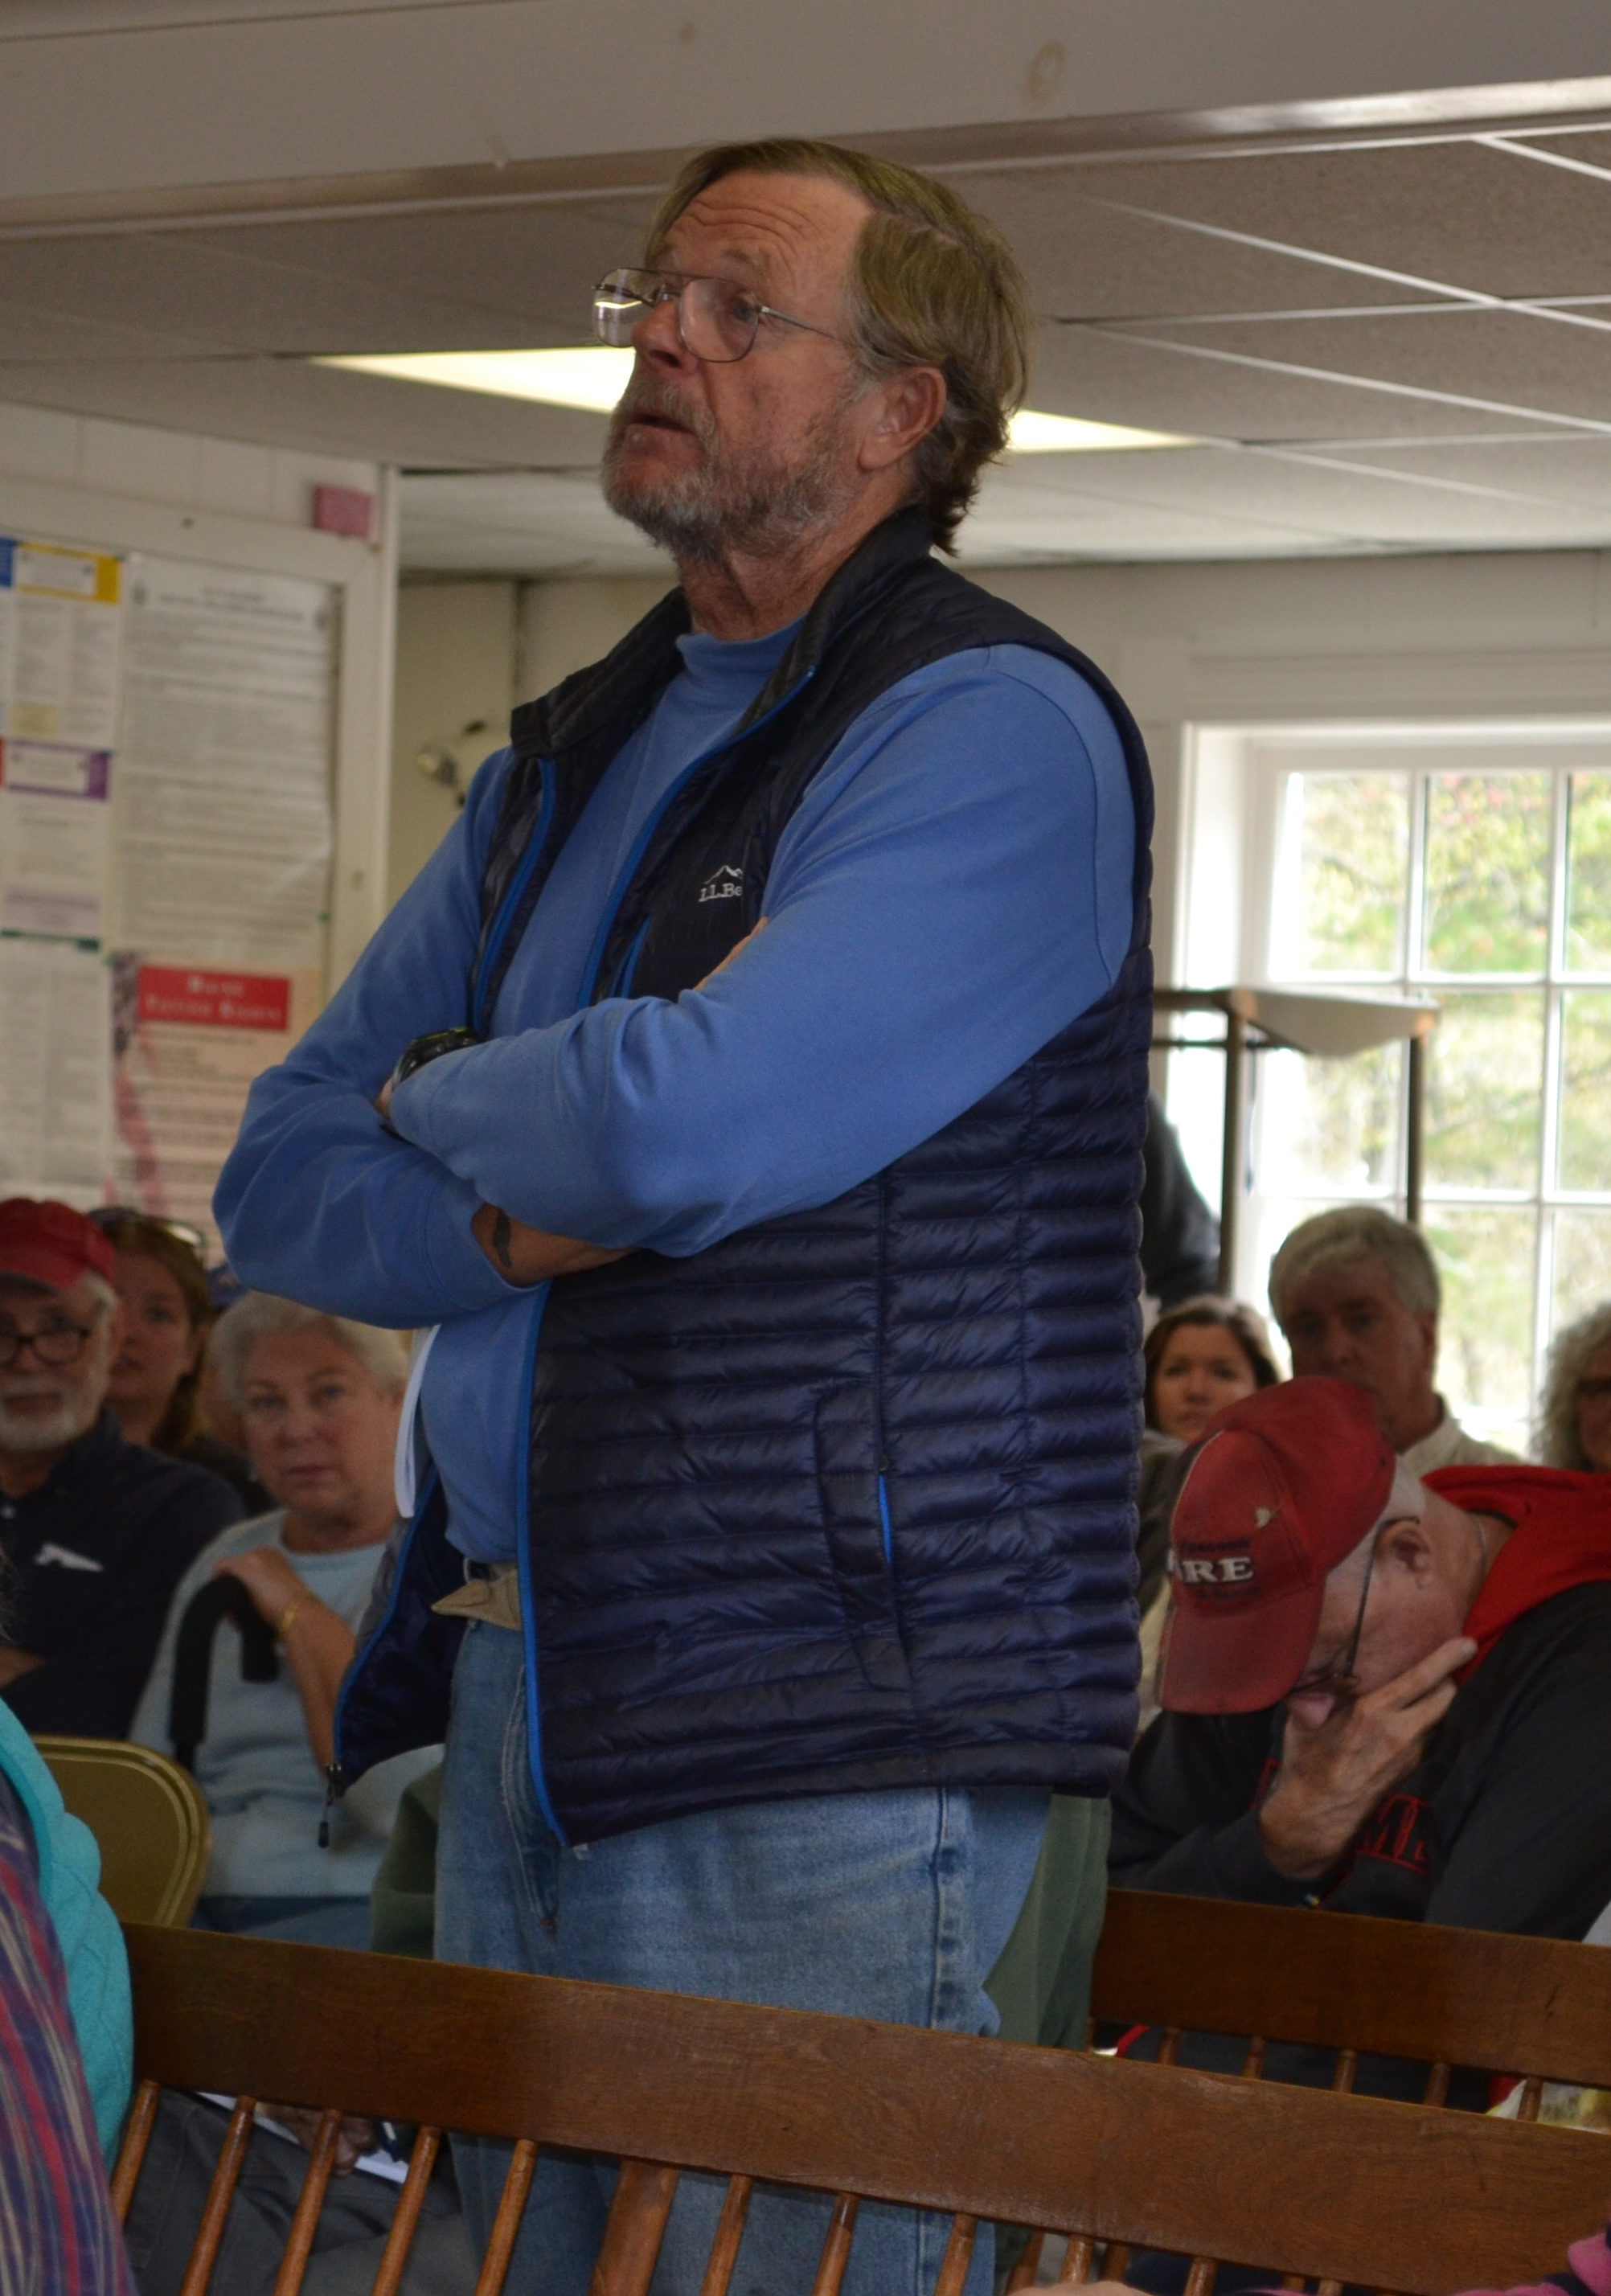 Edgecomb Harbormaster Corning Townsend speaks about a proposed stipend for the position at the annual town meeting Saturday, May 13. (Abigail Adams photo)